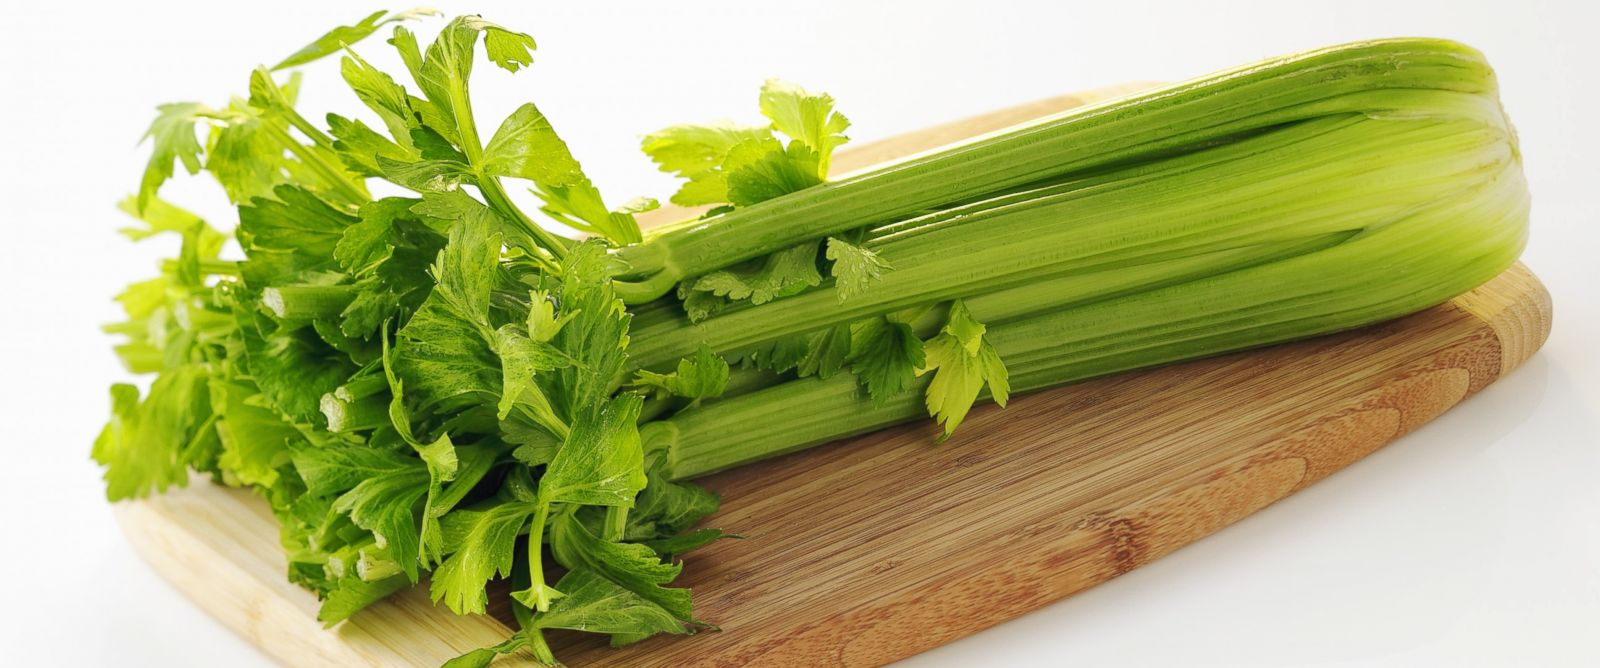 PHOTO:Celery is seen on a cutting board in this file photo.